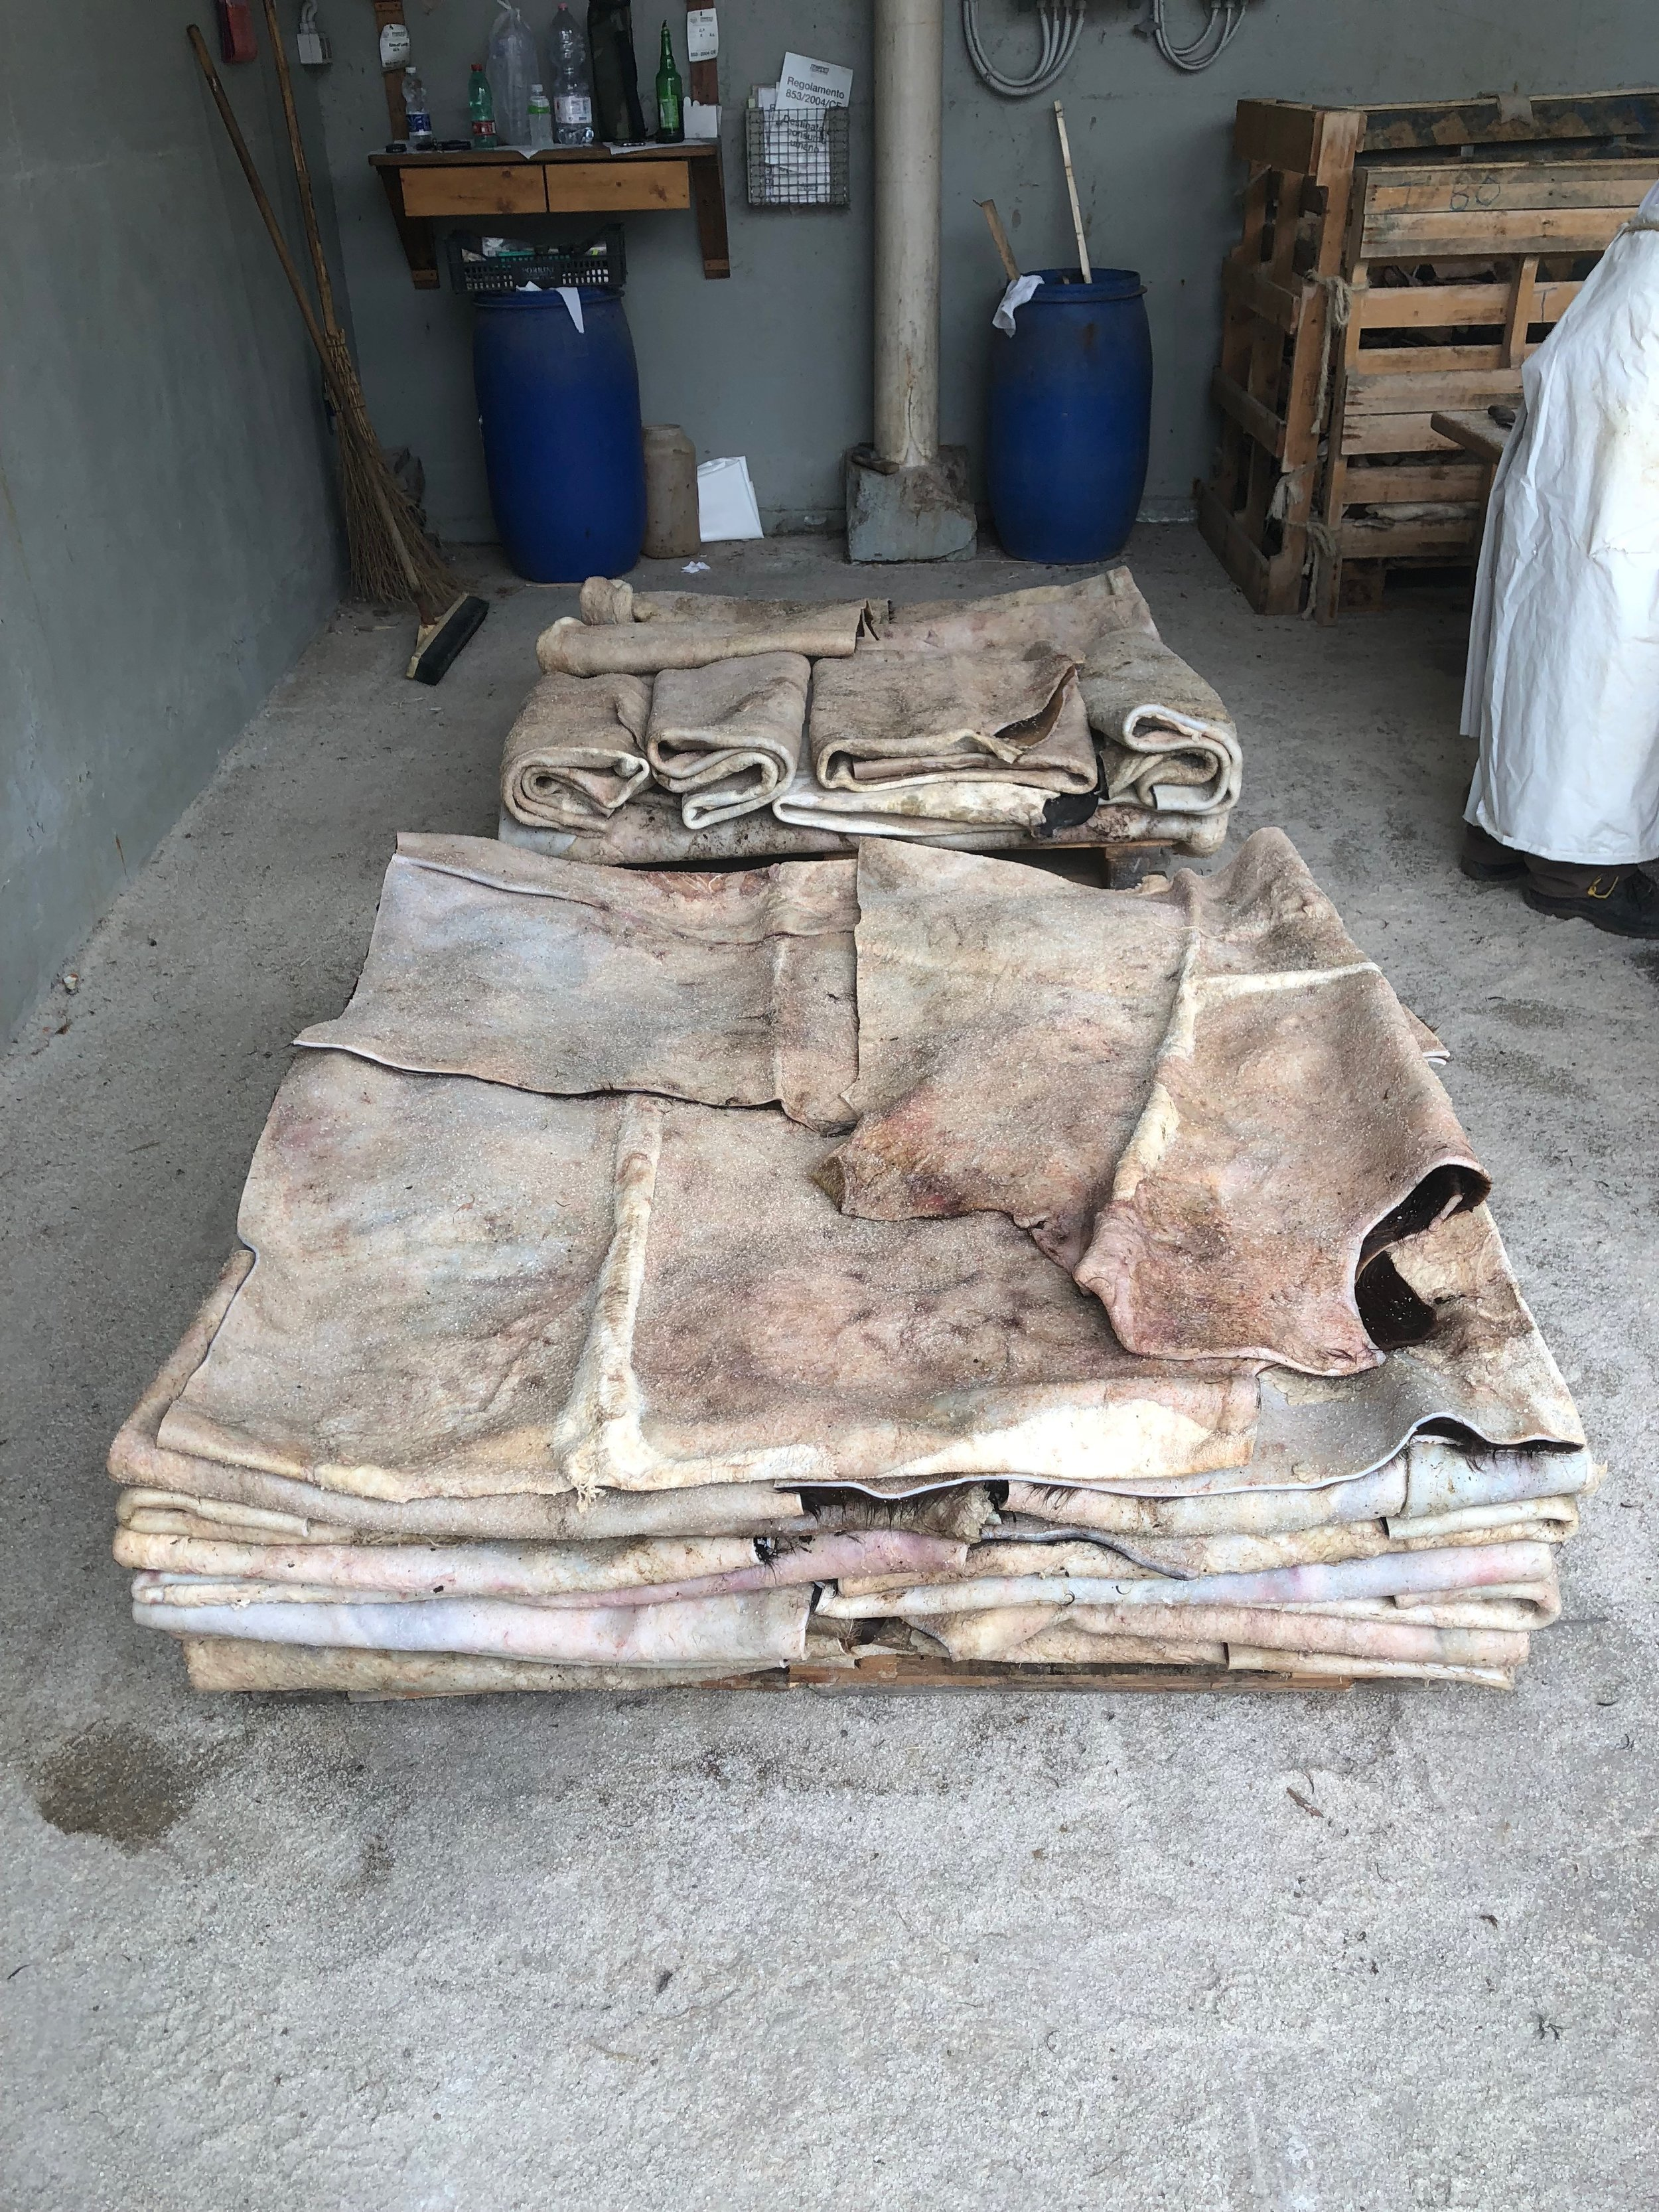 Animal skin before it is prepared for tanning to make leather